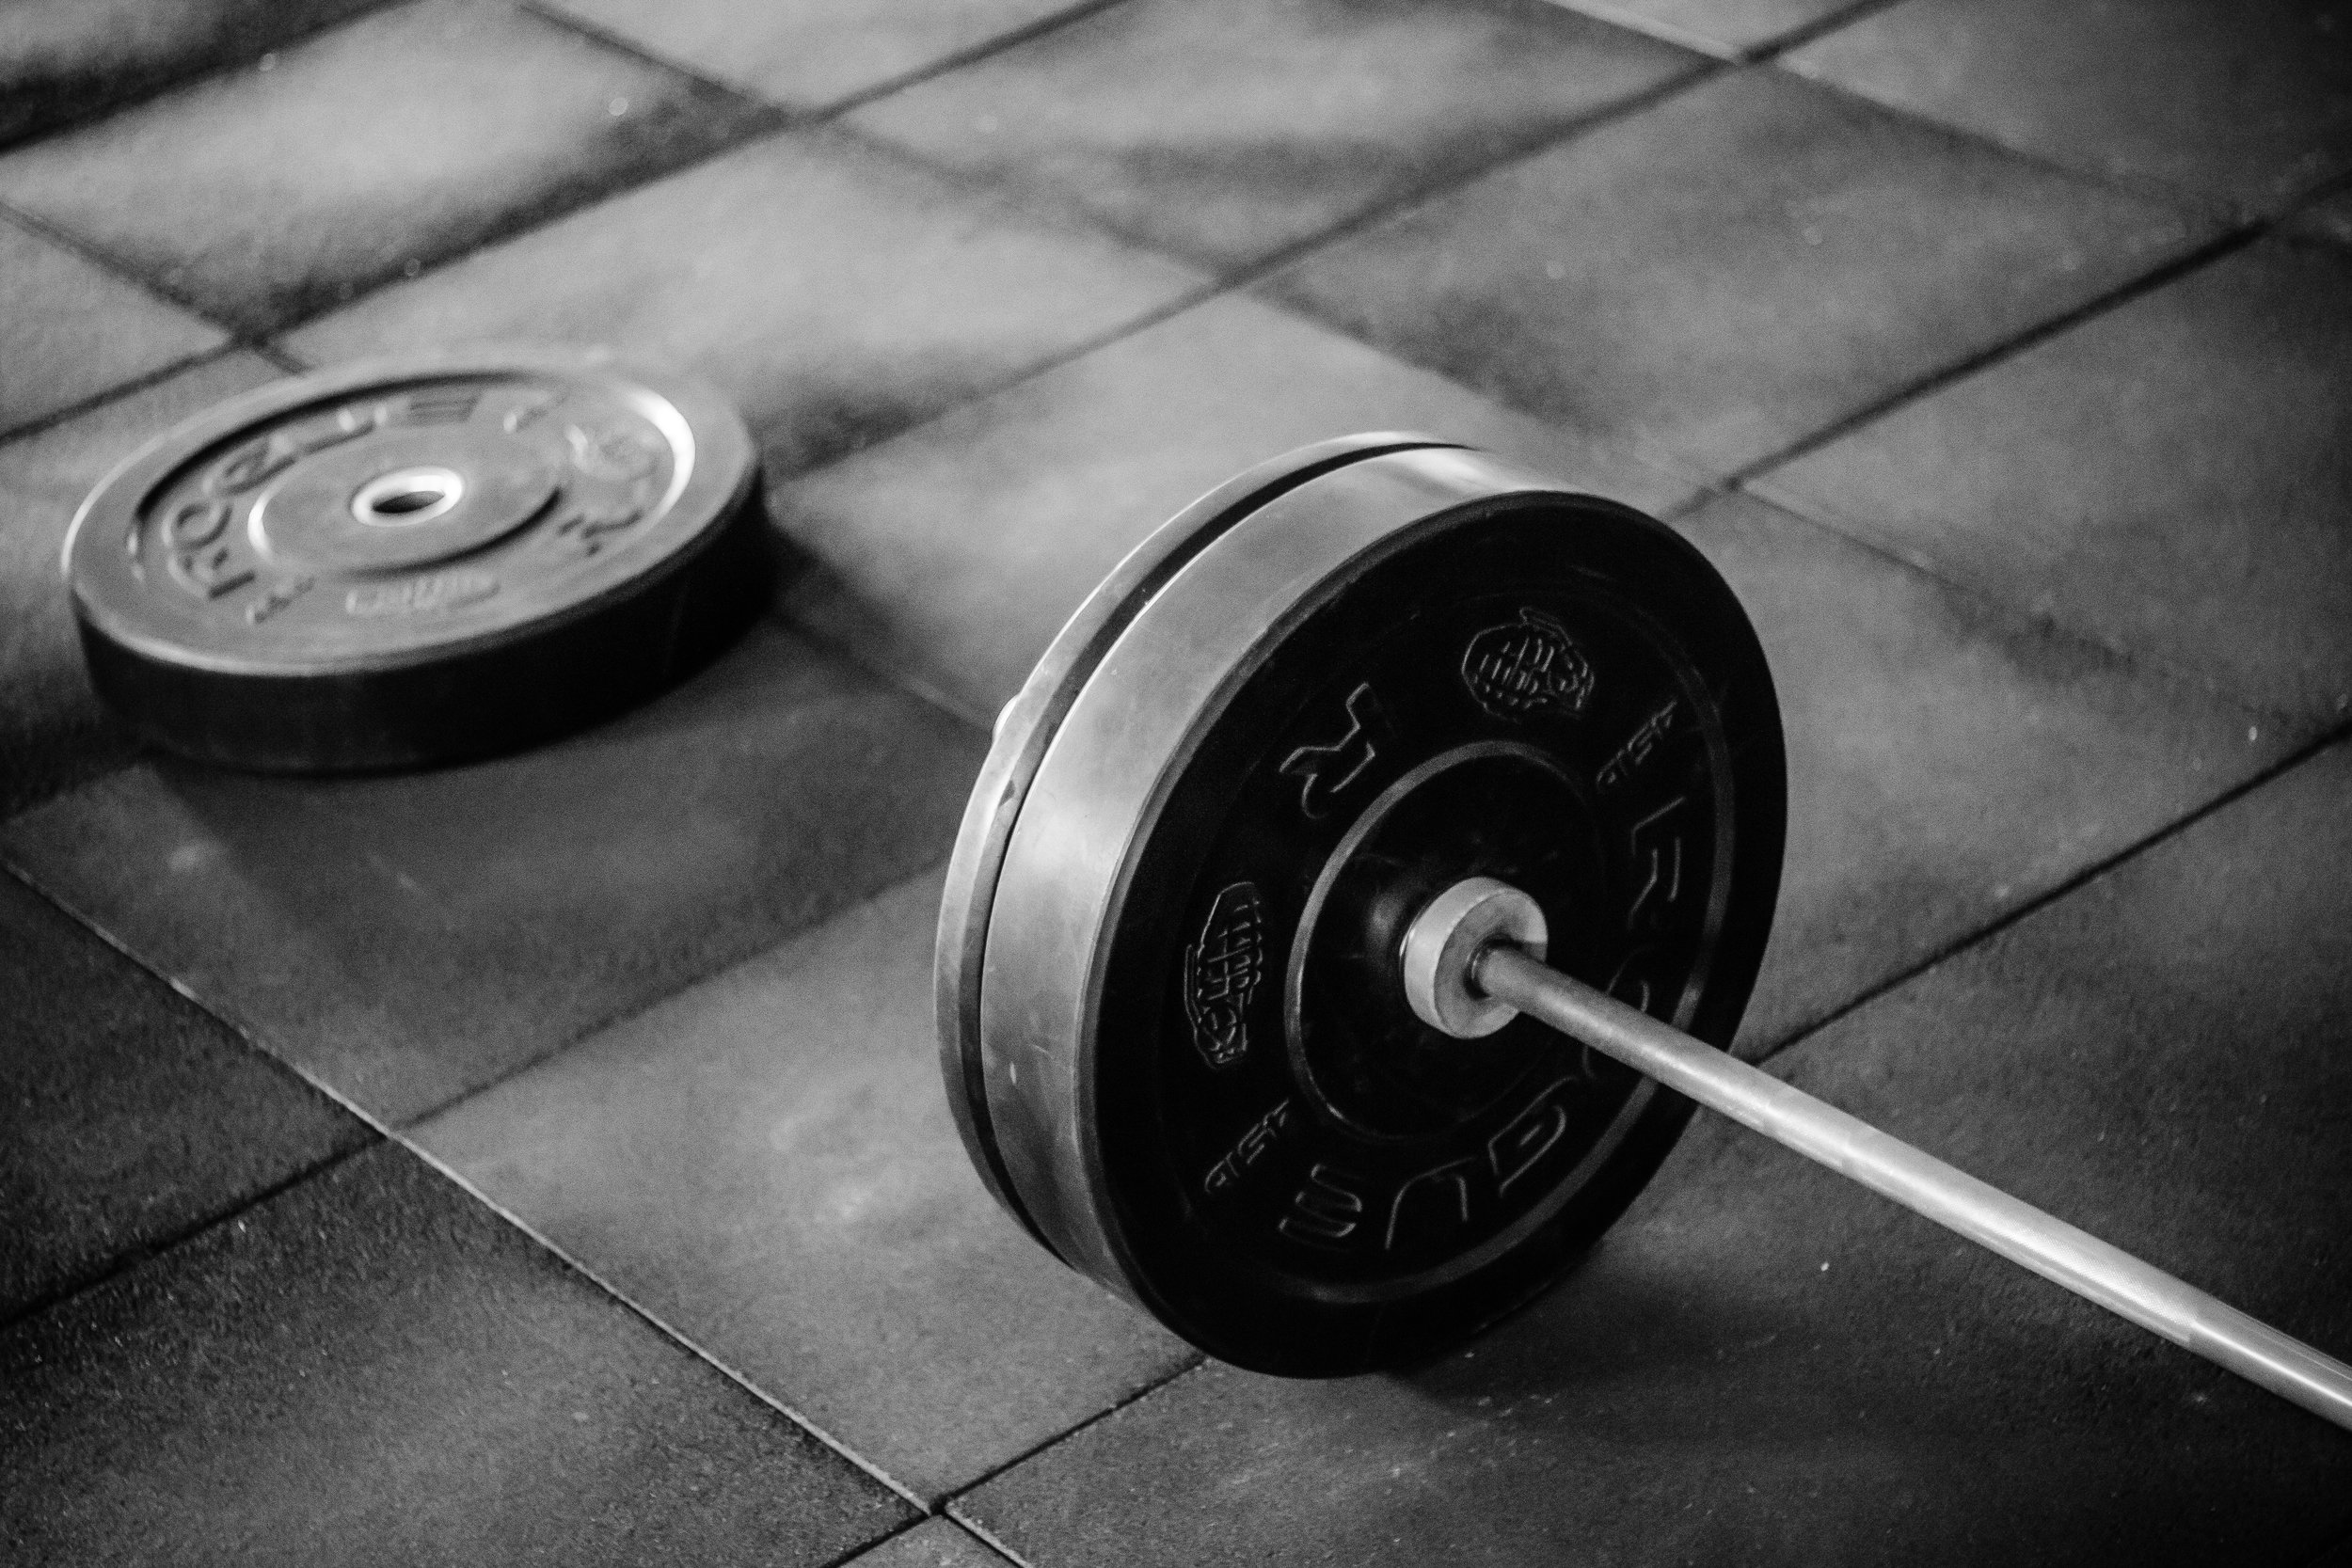 barbell-black-and-white-equipment-949131.jpg